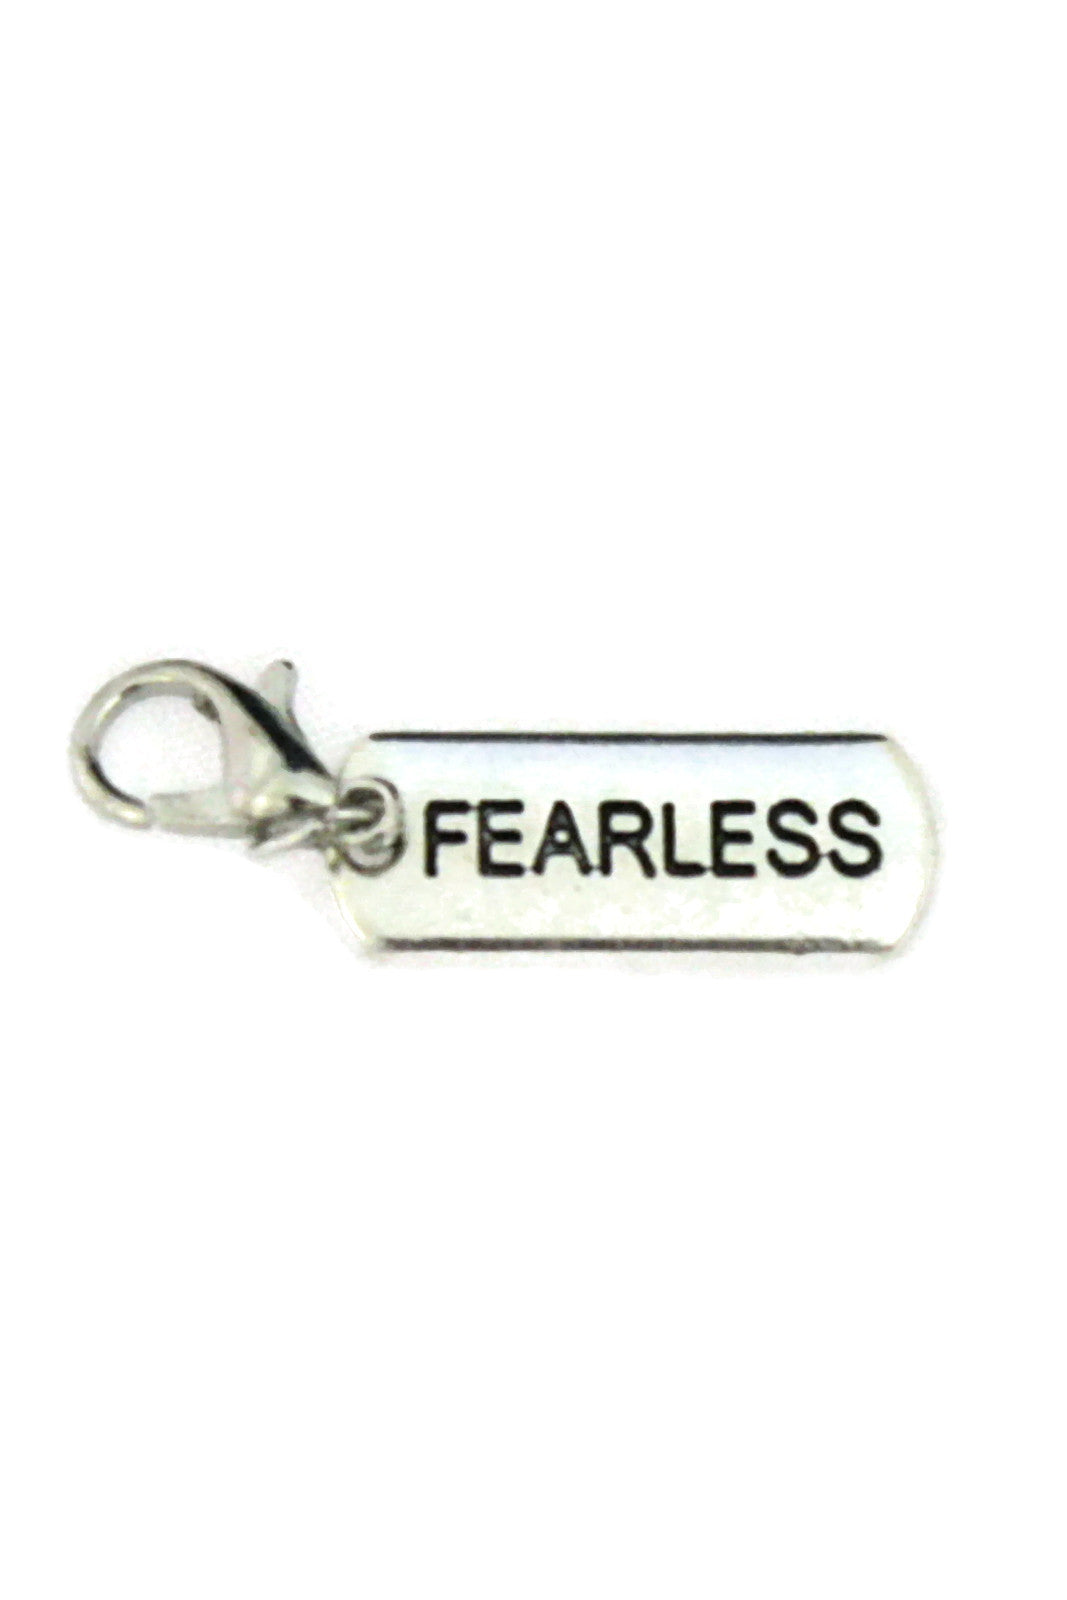 Fearless Silver Jewelry Charm-Jewelry Charm-Destination Oils